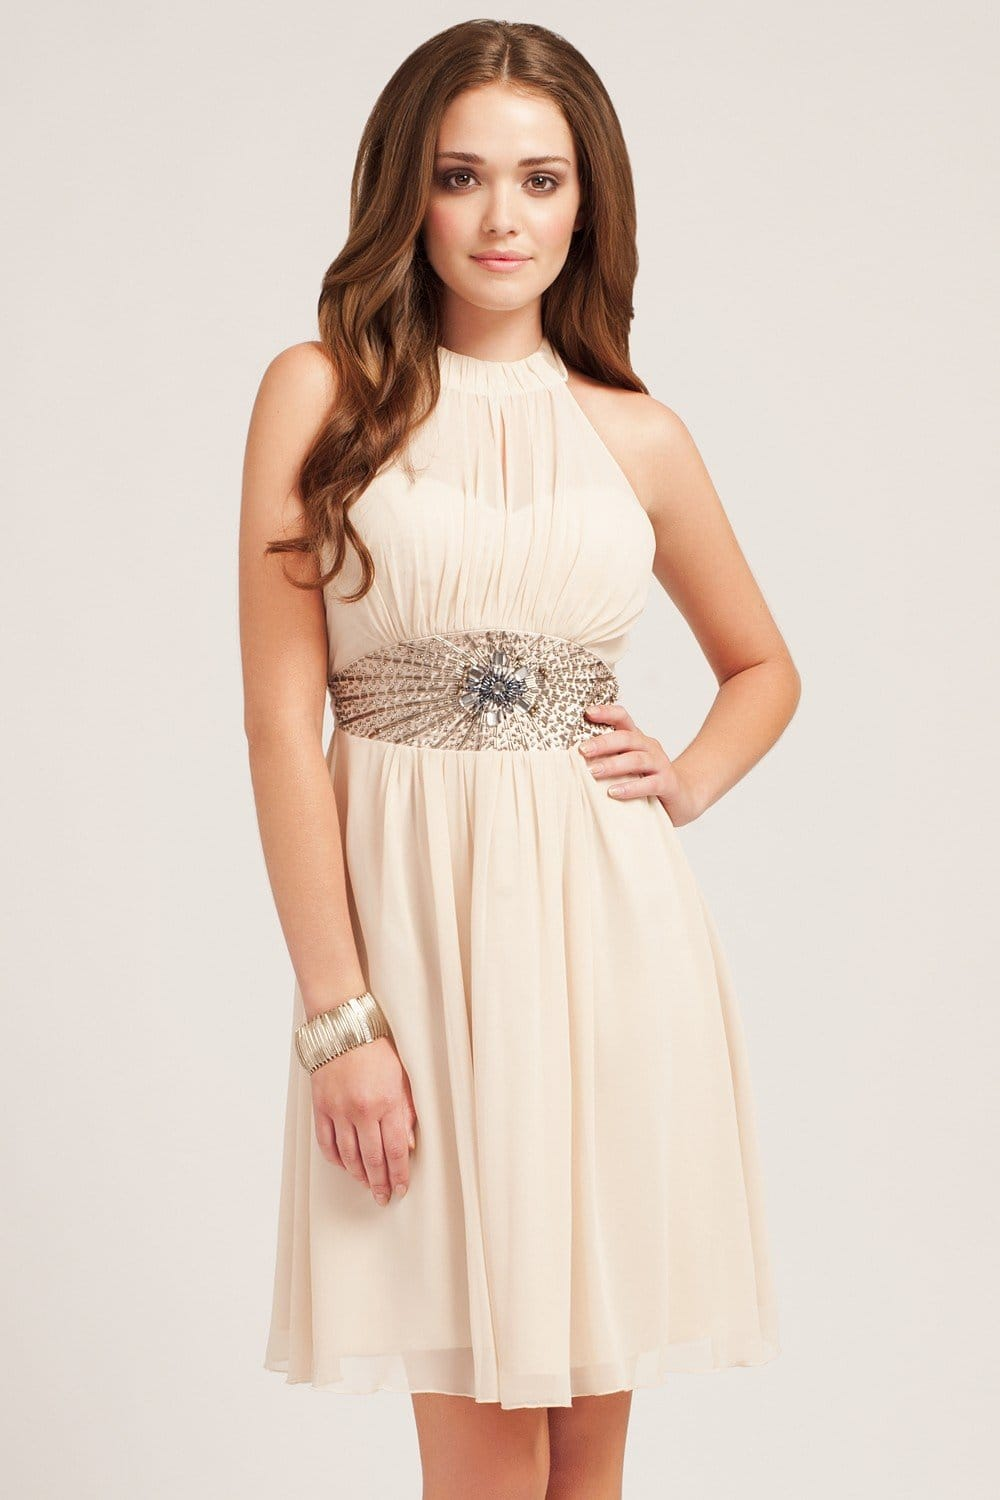 For a night out on the town to a casual summer look, a halter dress can make you ready for nearly any occasion. Perfect for senior proms or any formal event or even a day out for summer shopping, this style will give any woman confidence with a great look and feel.